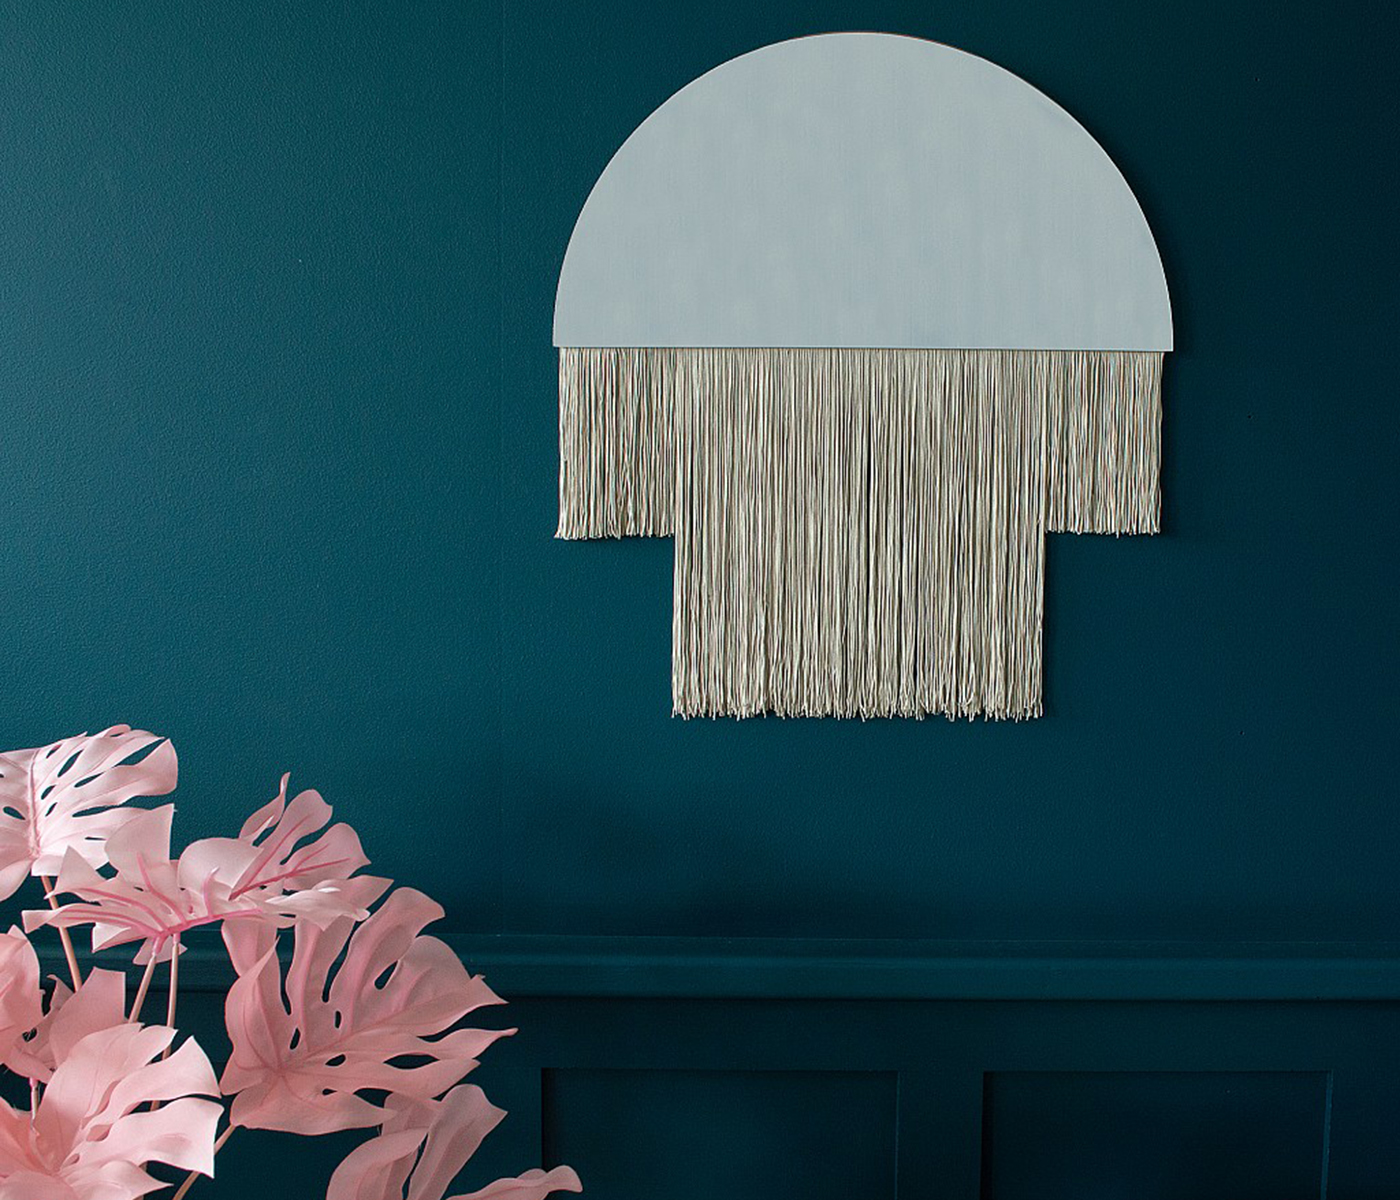 Demi-lune Mirror with Fringing, from £54 ($68), Audenza, international delivery